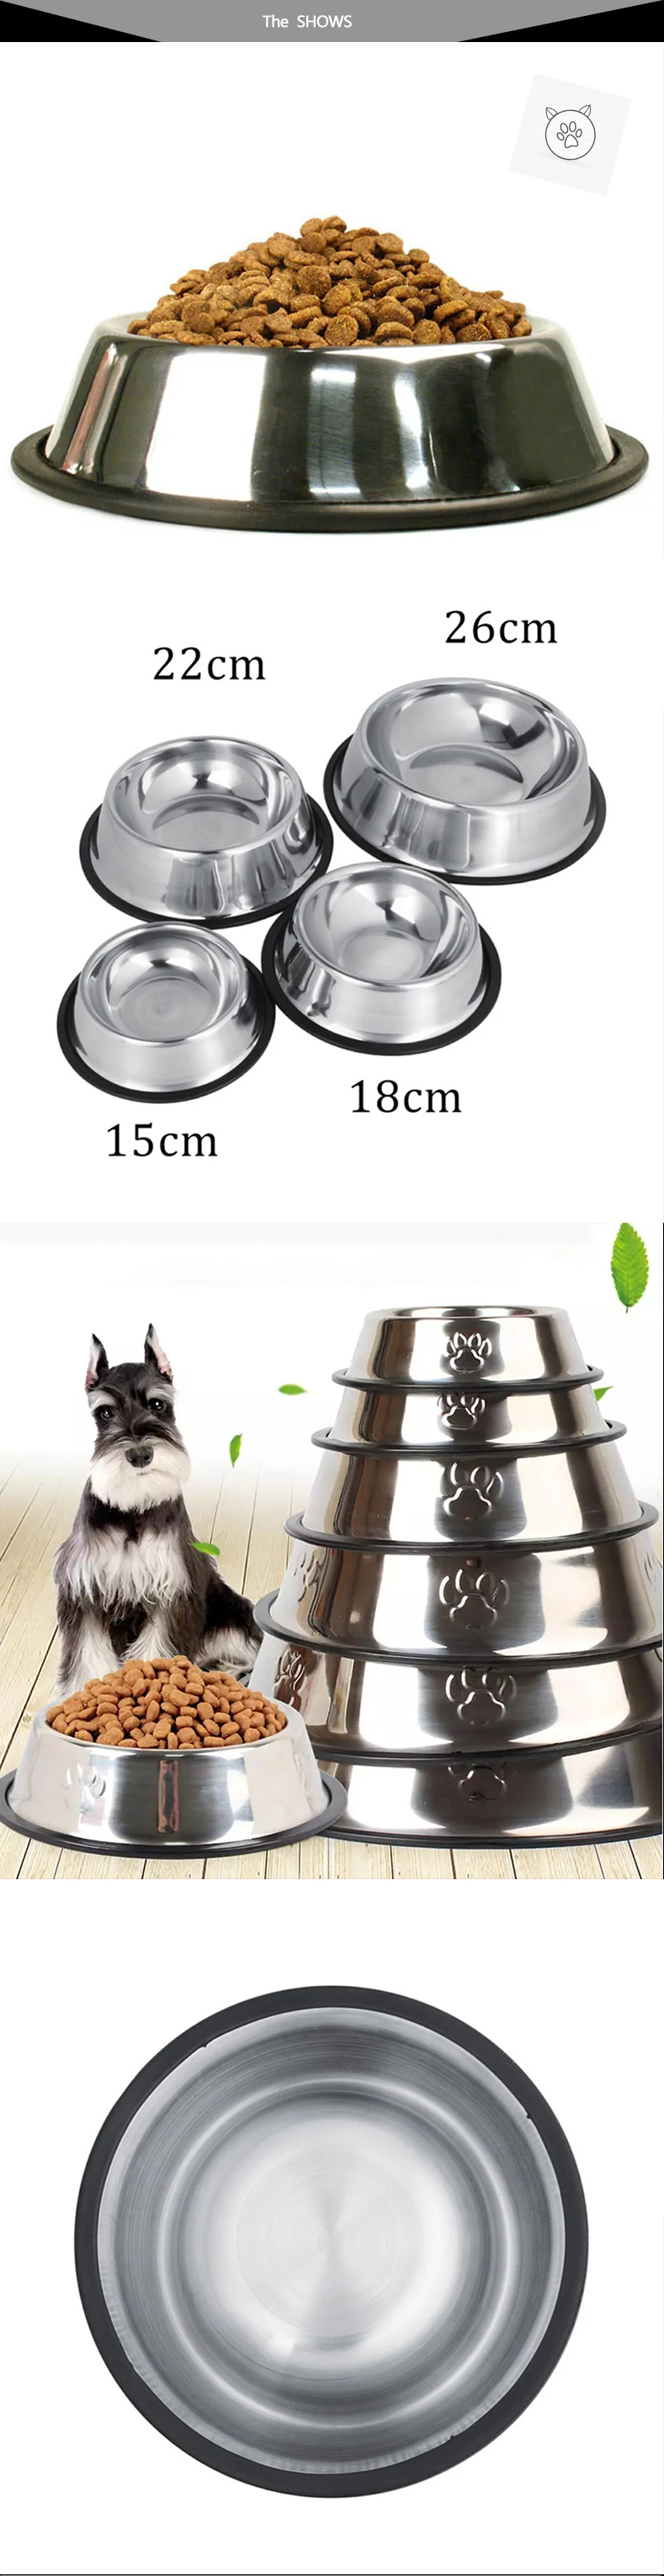 SUPREPET Stainless Steel Non-slip Feeding Bowl For Pets Anti-fall And Anti-bite Dog Bowl And Cat Anti-fall  Feeding Bowl 9